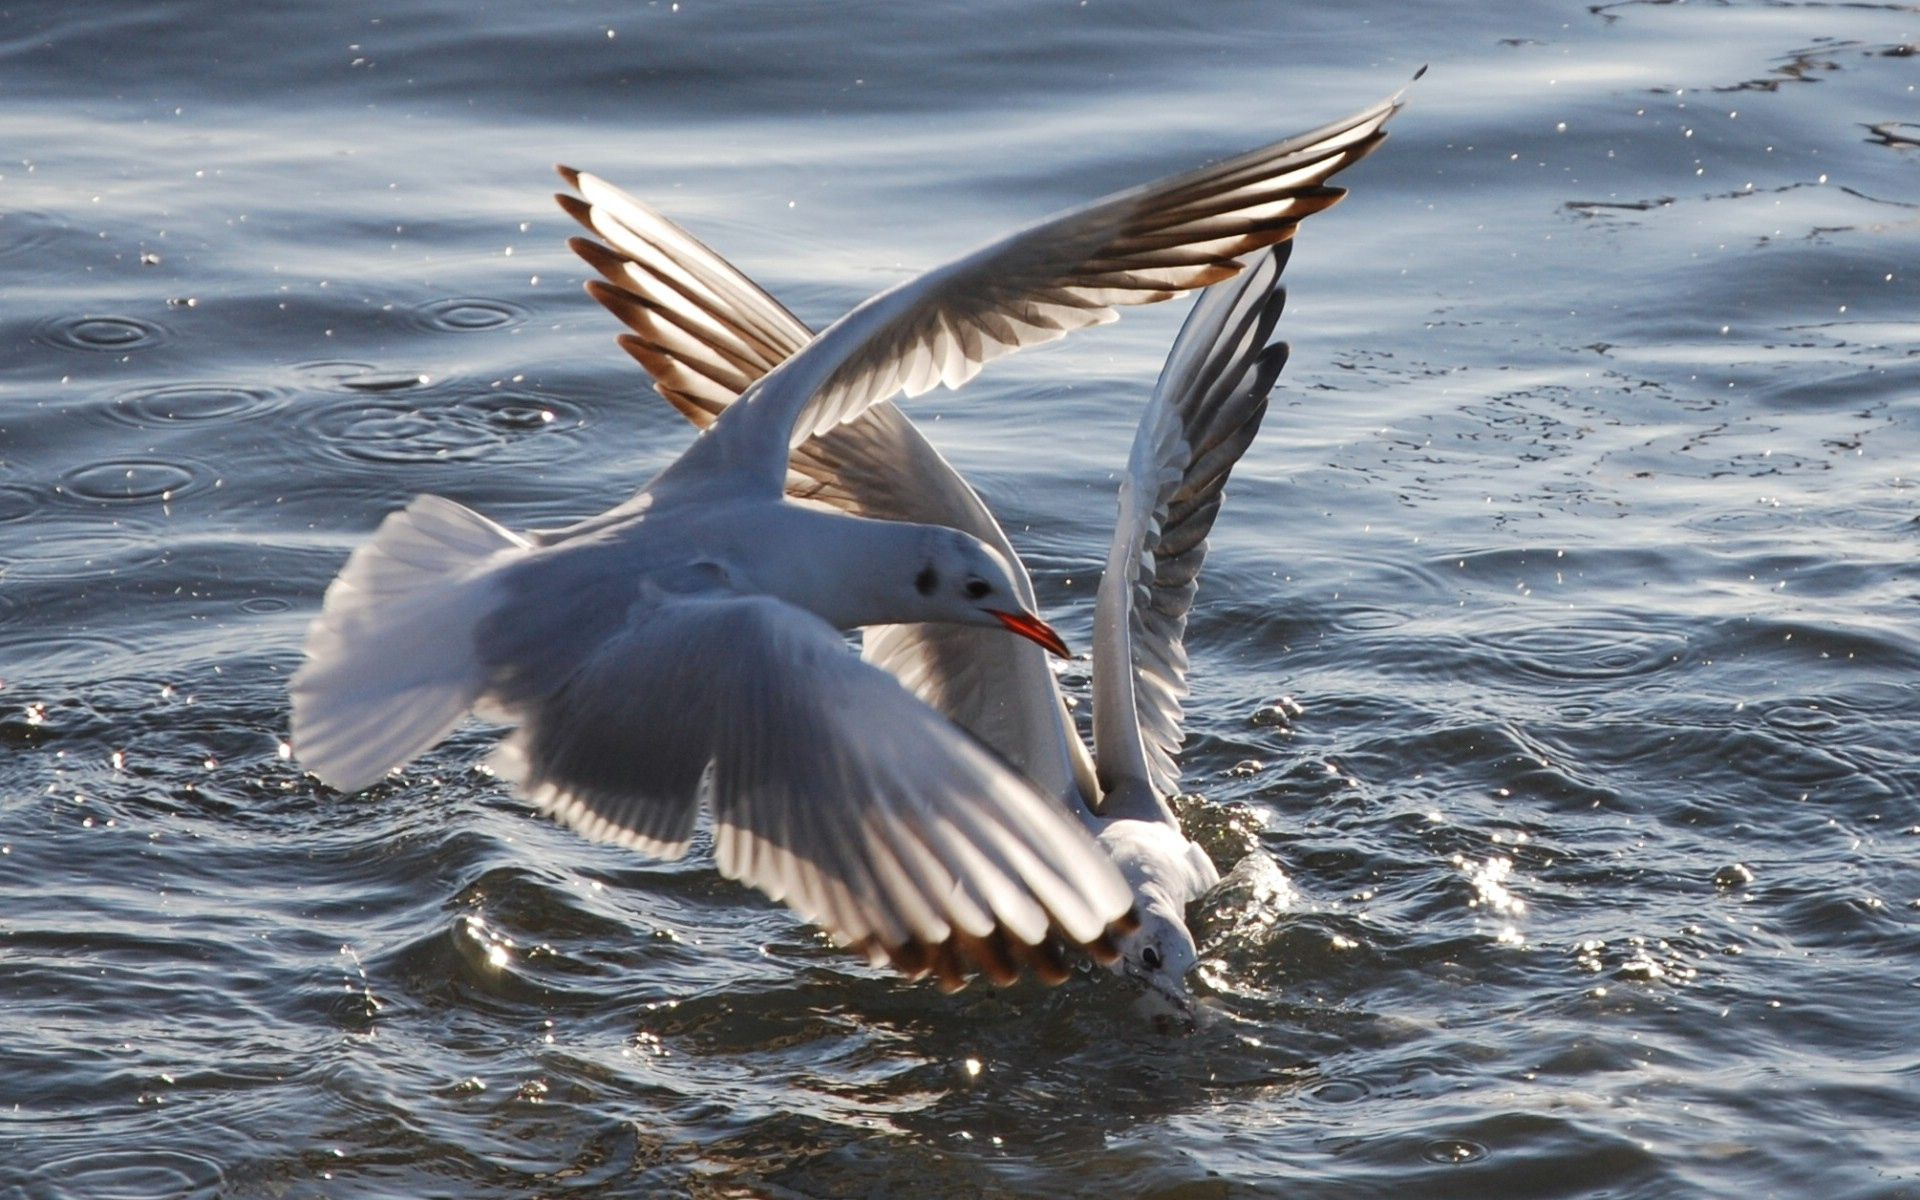 98716 download wallpaper Animals, Birds, Water, Sea, Seagulls, Flight screensavers and pictures for free